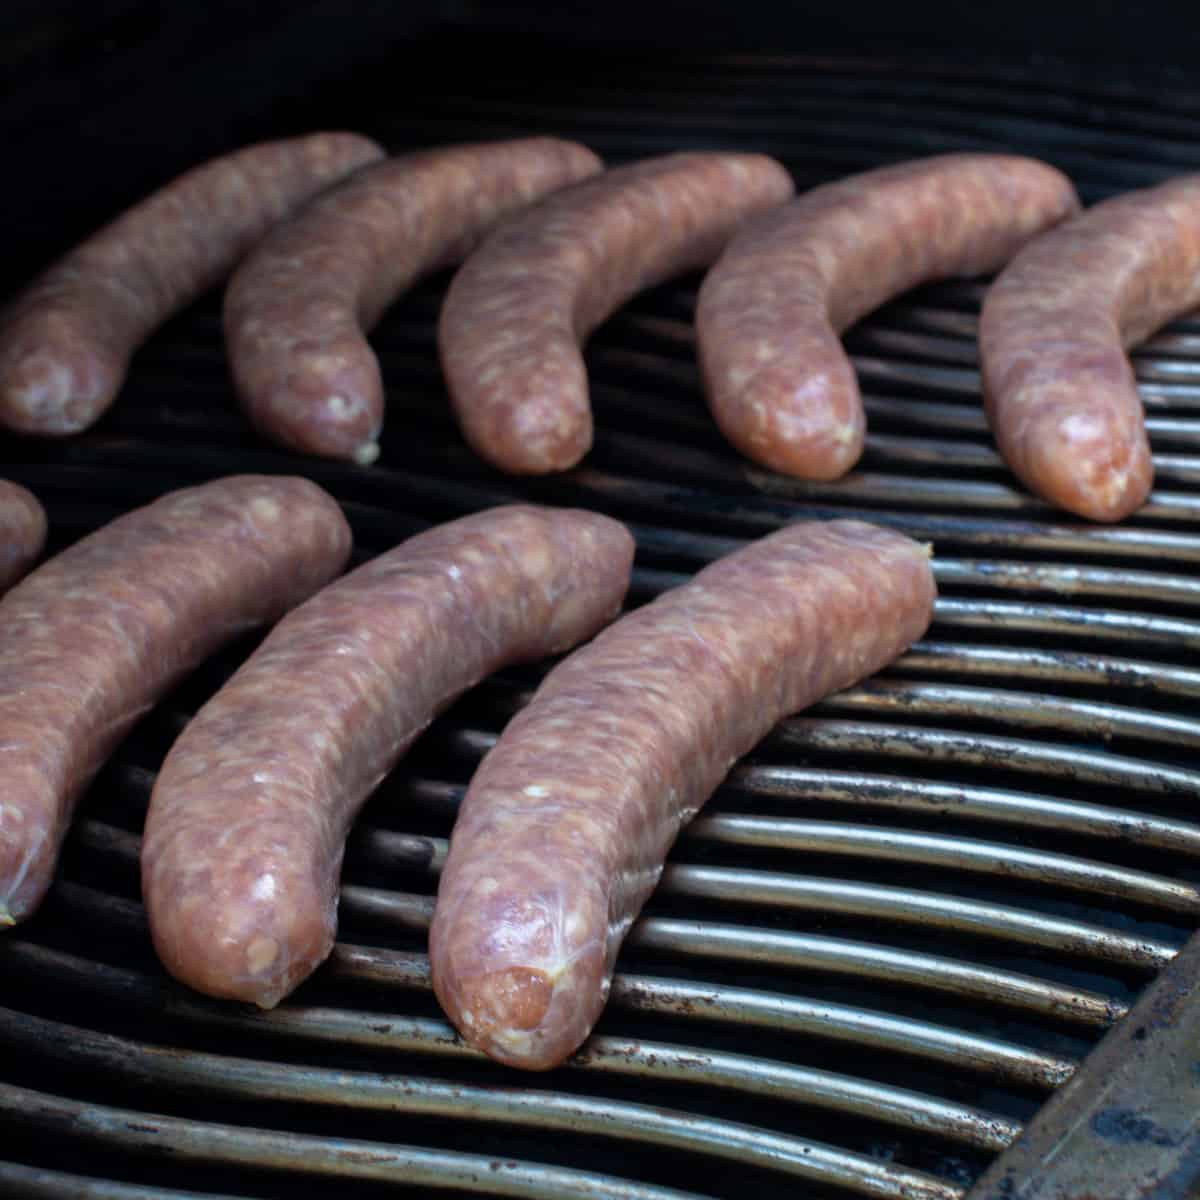 Raw sausages placed on a grill.